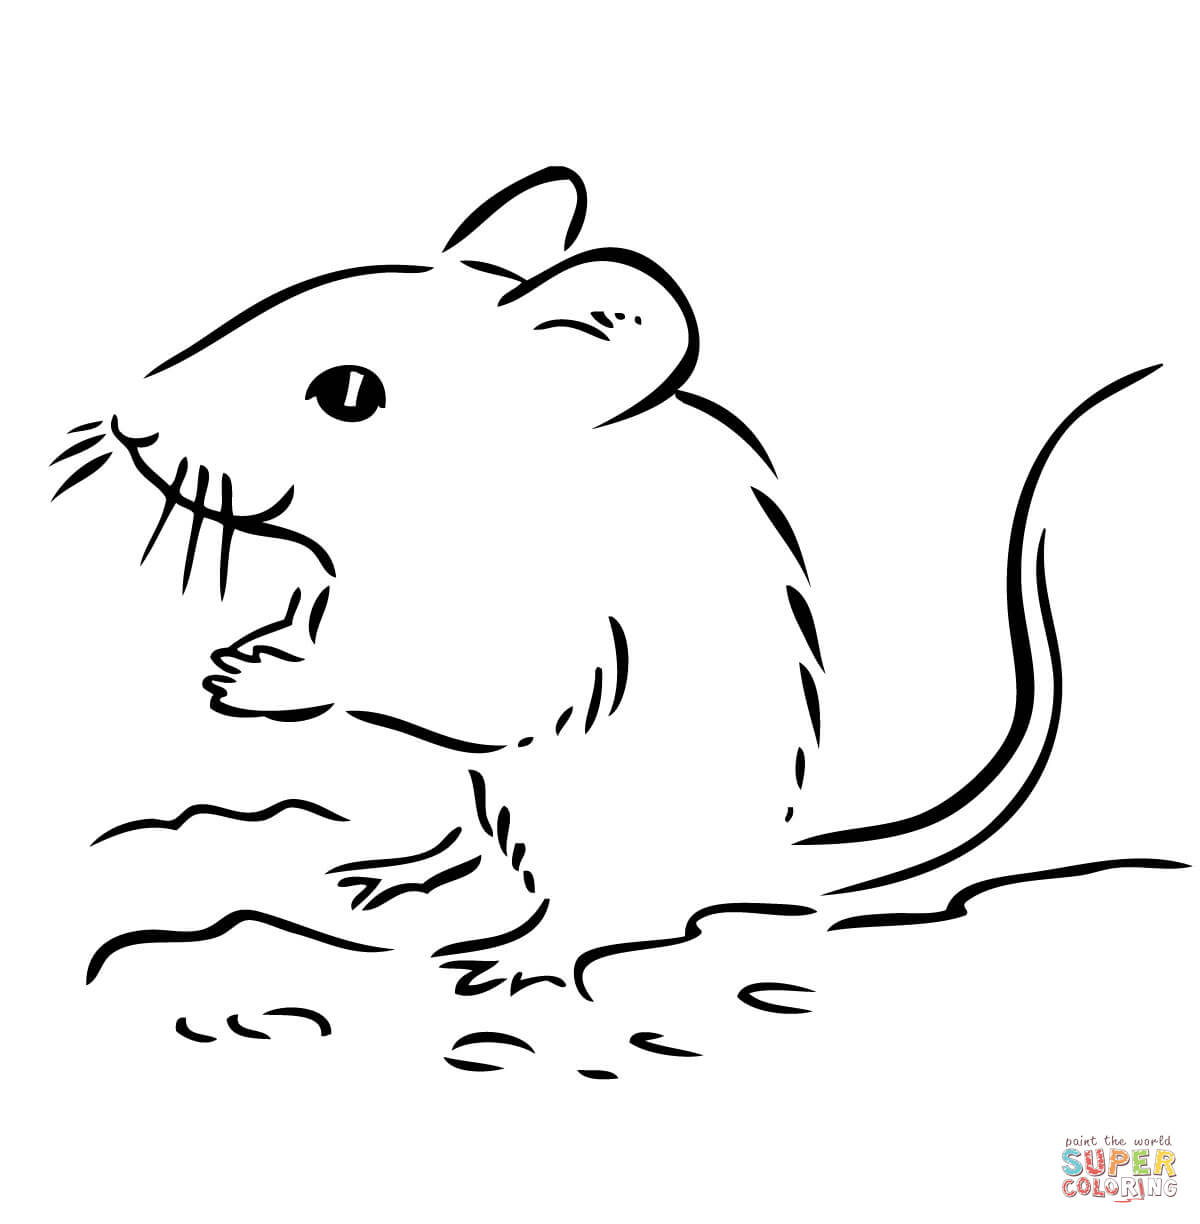 Drawn rodent deer mouse Deer Free Pages Cute coloring